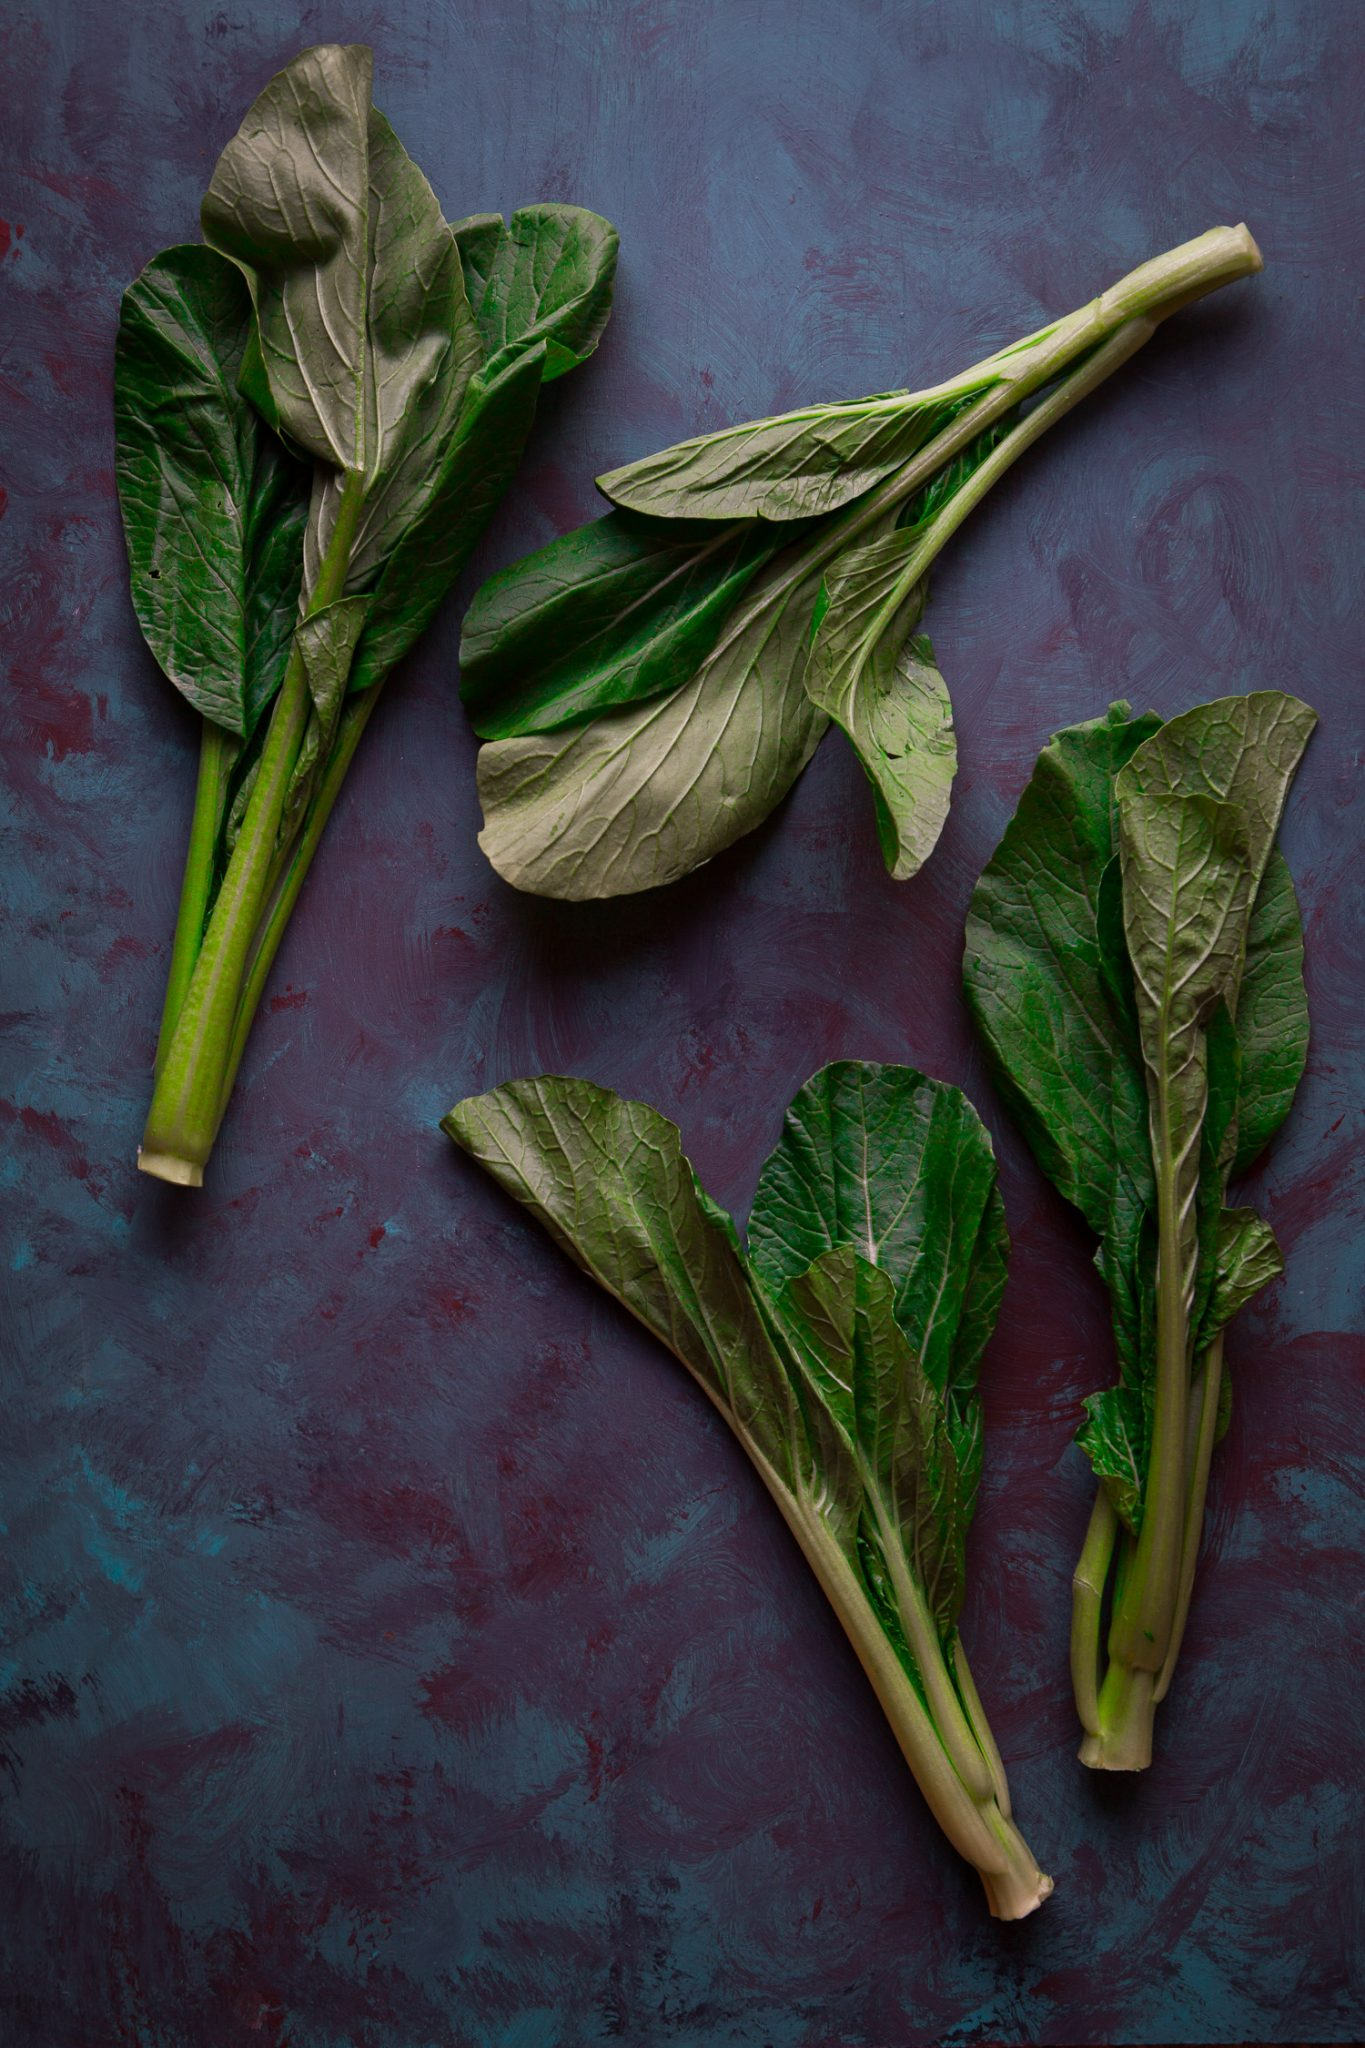 Choy Sum / Chinese Greens